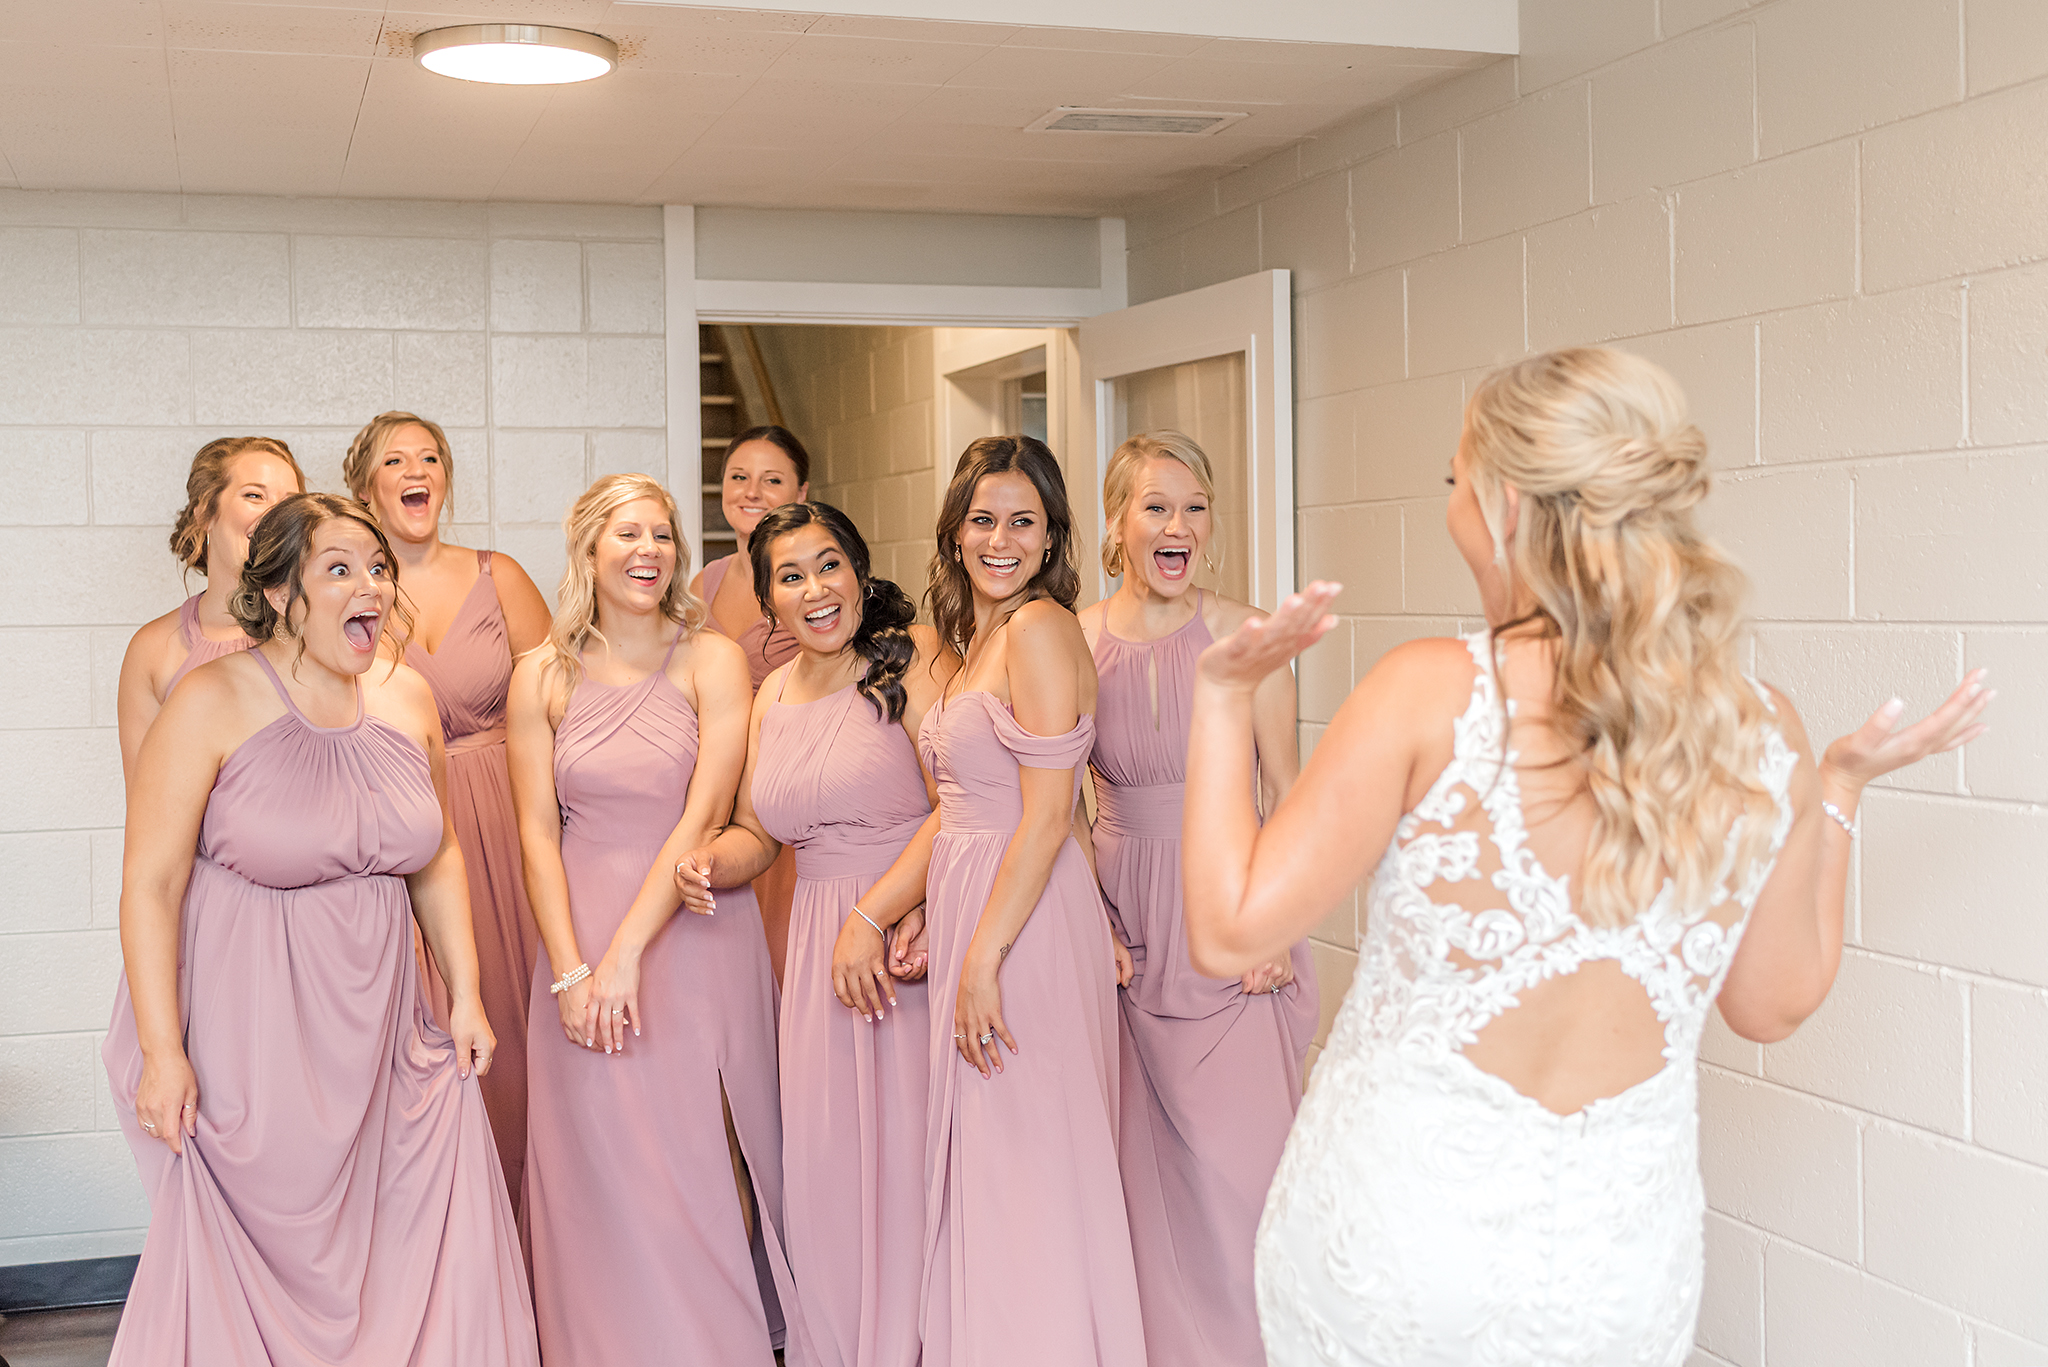 Lindsay-Adkins-Photography-Michigan-Wedding-Photographer-Tecumseh-Michigan-11